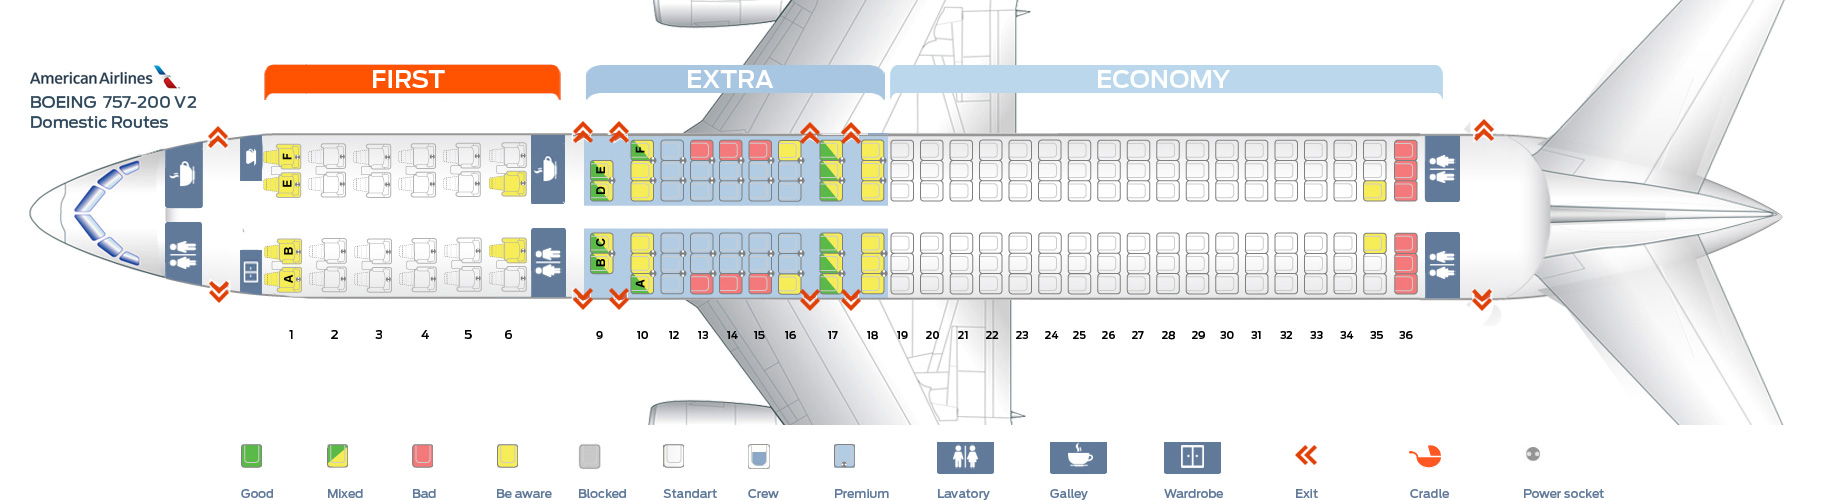 Seat Map Boeing 757200 American Airlines Best Seats In The Plane. First Cabin Version Of The Boeing 757200. Seat. Airplane Seating Schematic At Scoala.co